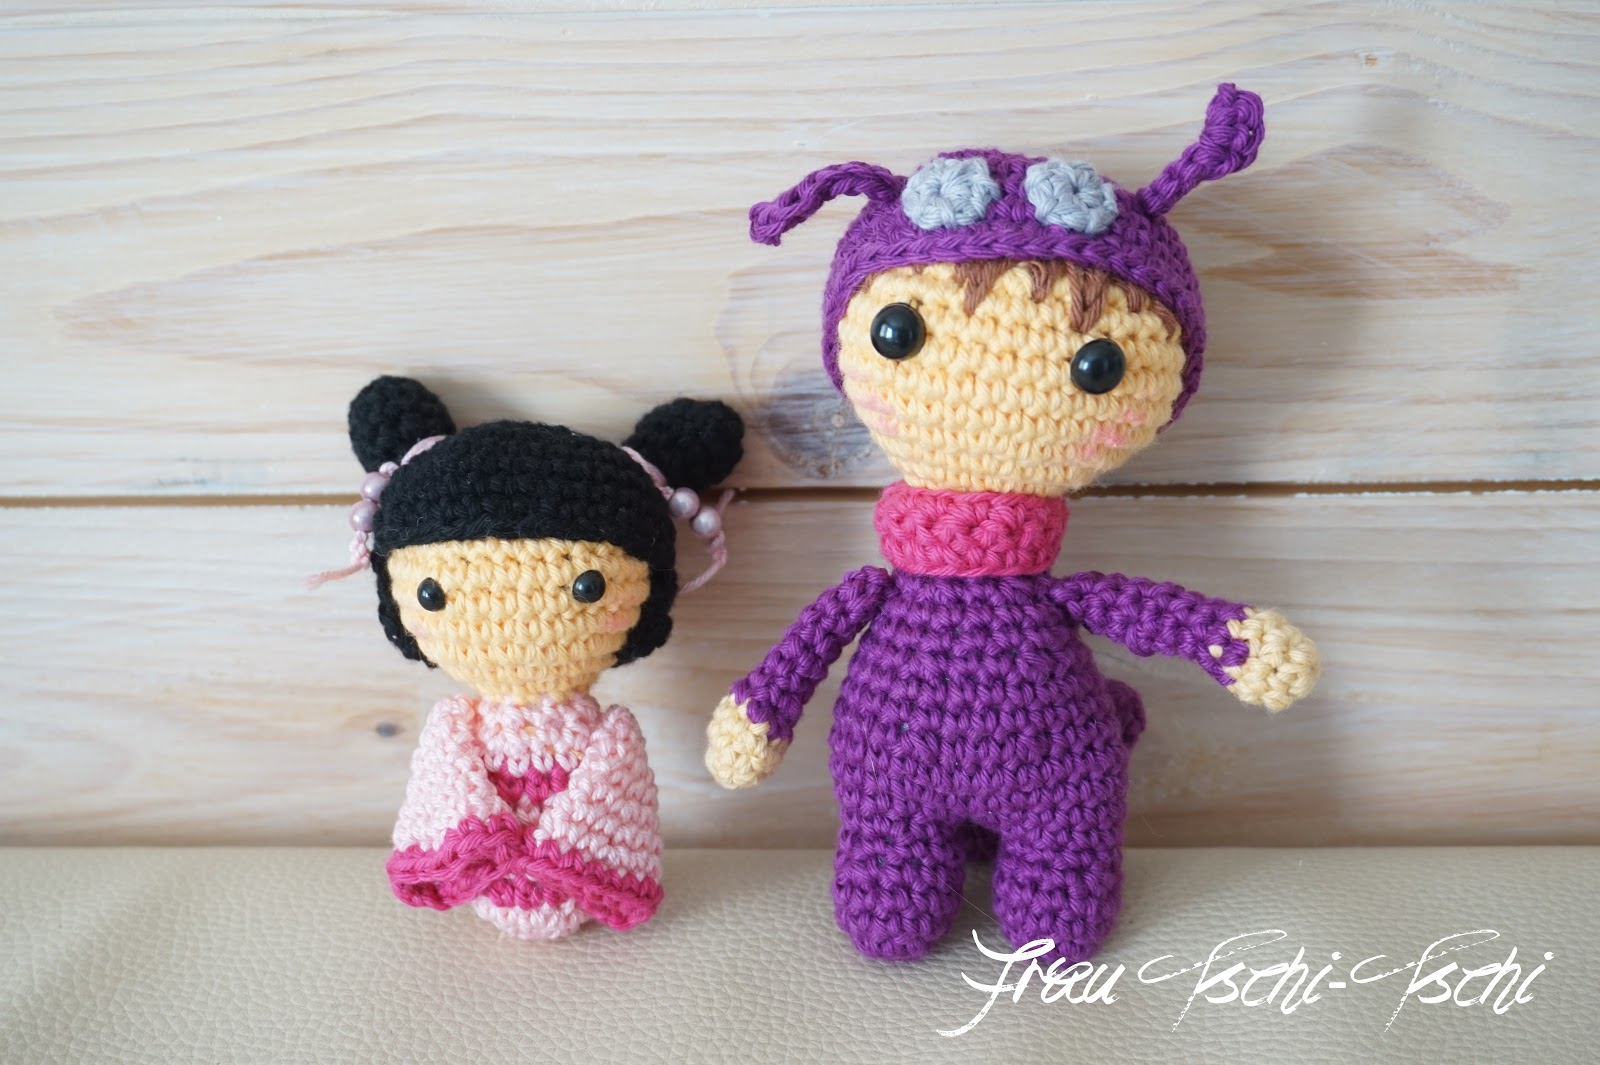 frau tschi tschi amigurumi kokeshi puppe h keln anleitung kostenlos. Black Bedroom Furniture Sets. Home Design Ideas